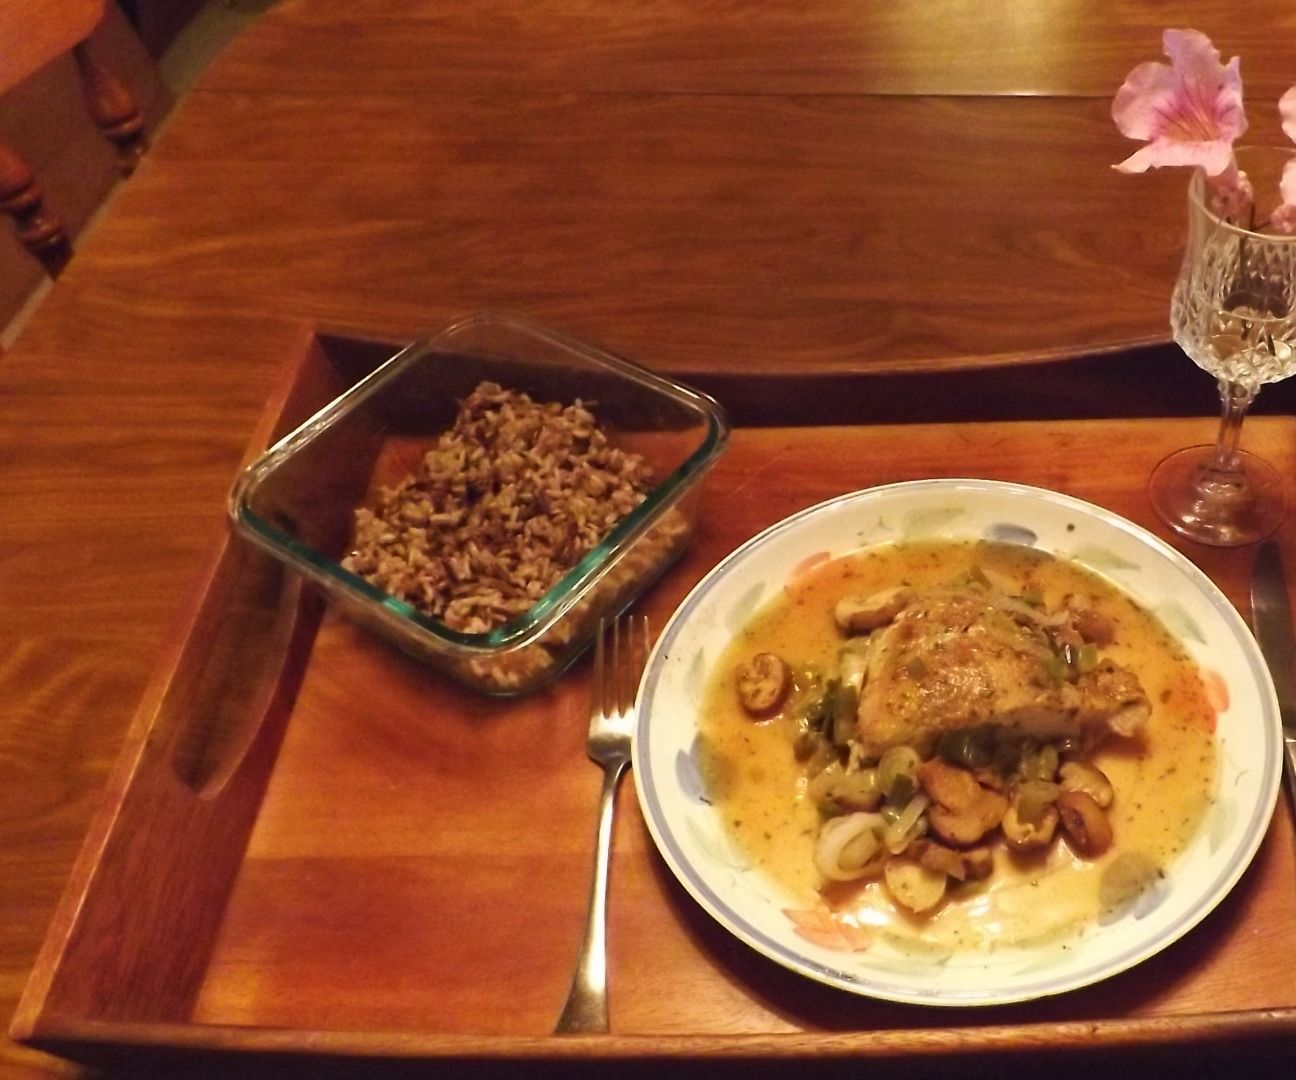 BLUE CHEESE STUFFED BREAST OF CHICKEN SIMMERED IN WHITE WINE WITH SPRING ONIONS & MUSHROOMS